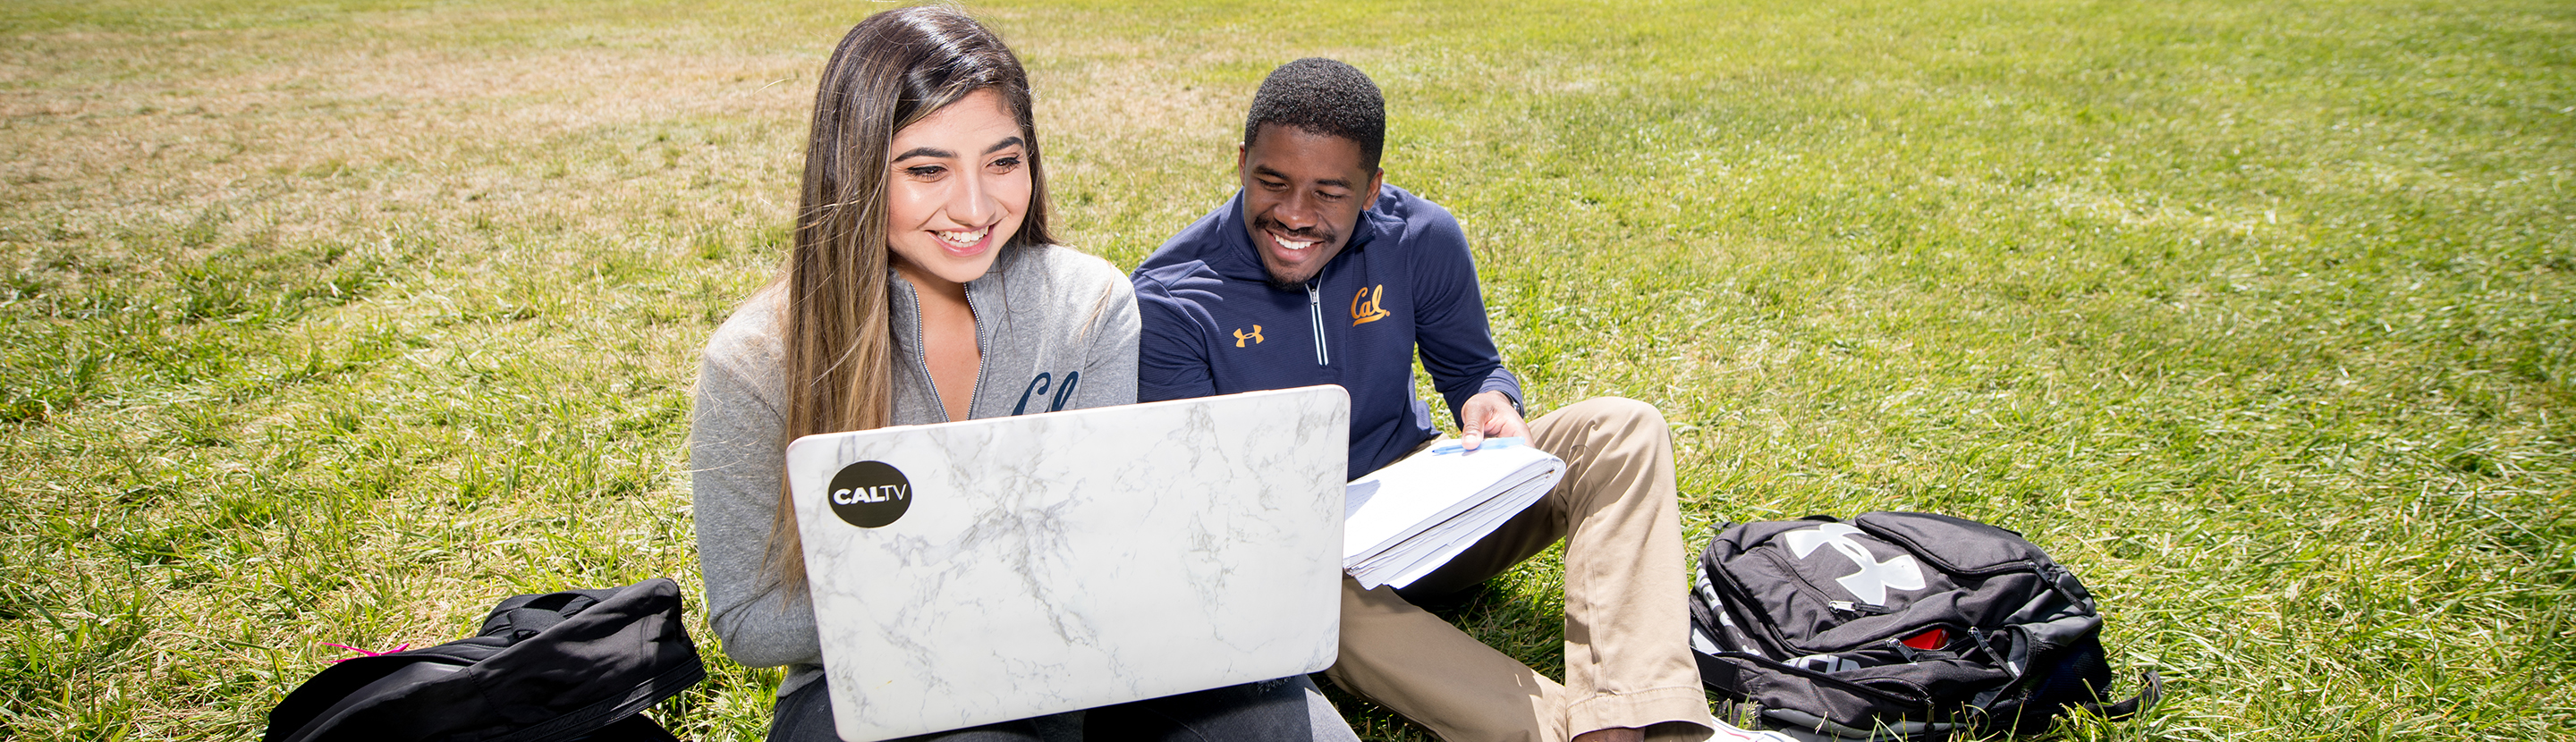 Students studying outdoors with laptop.